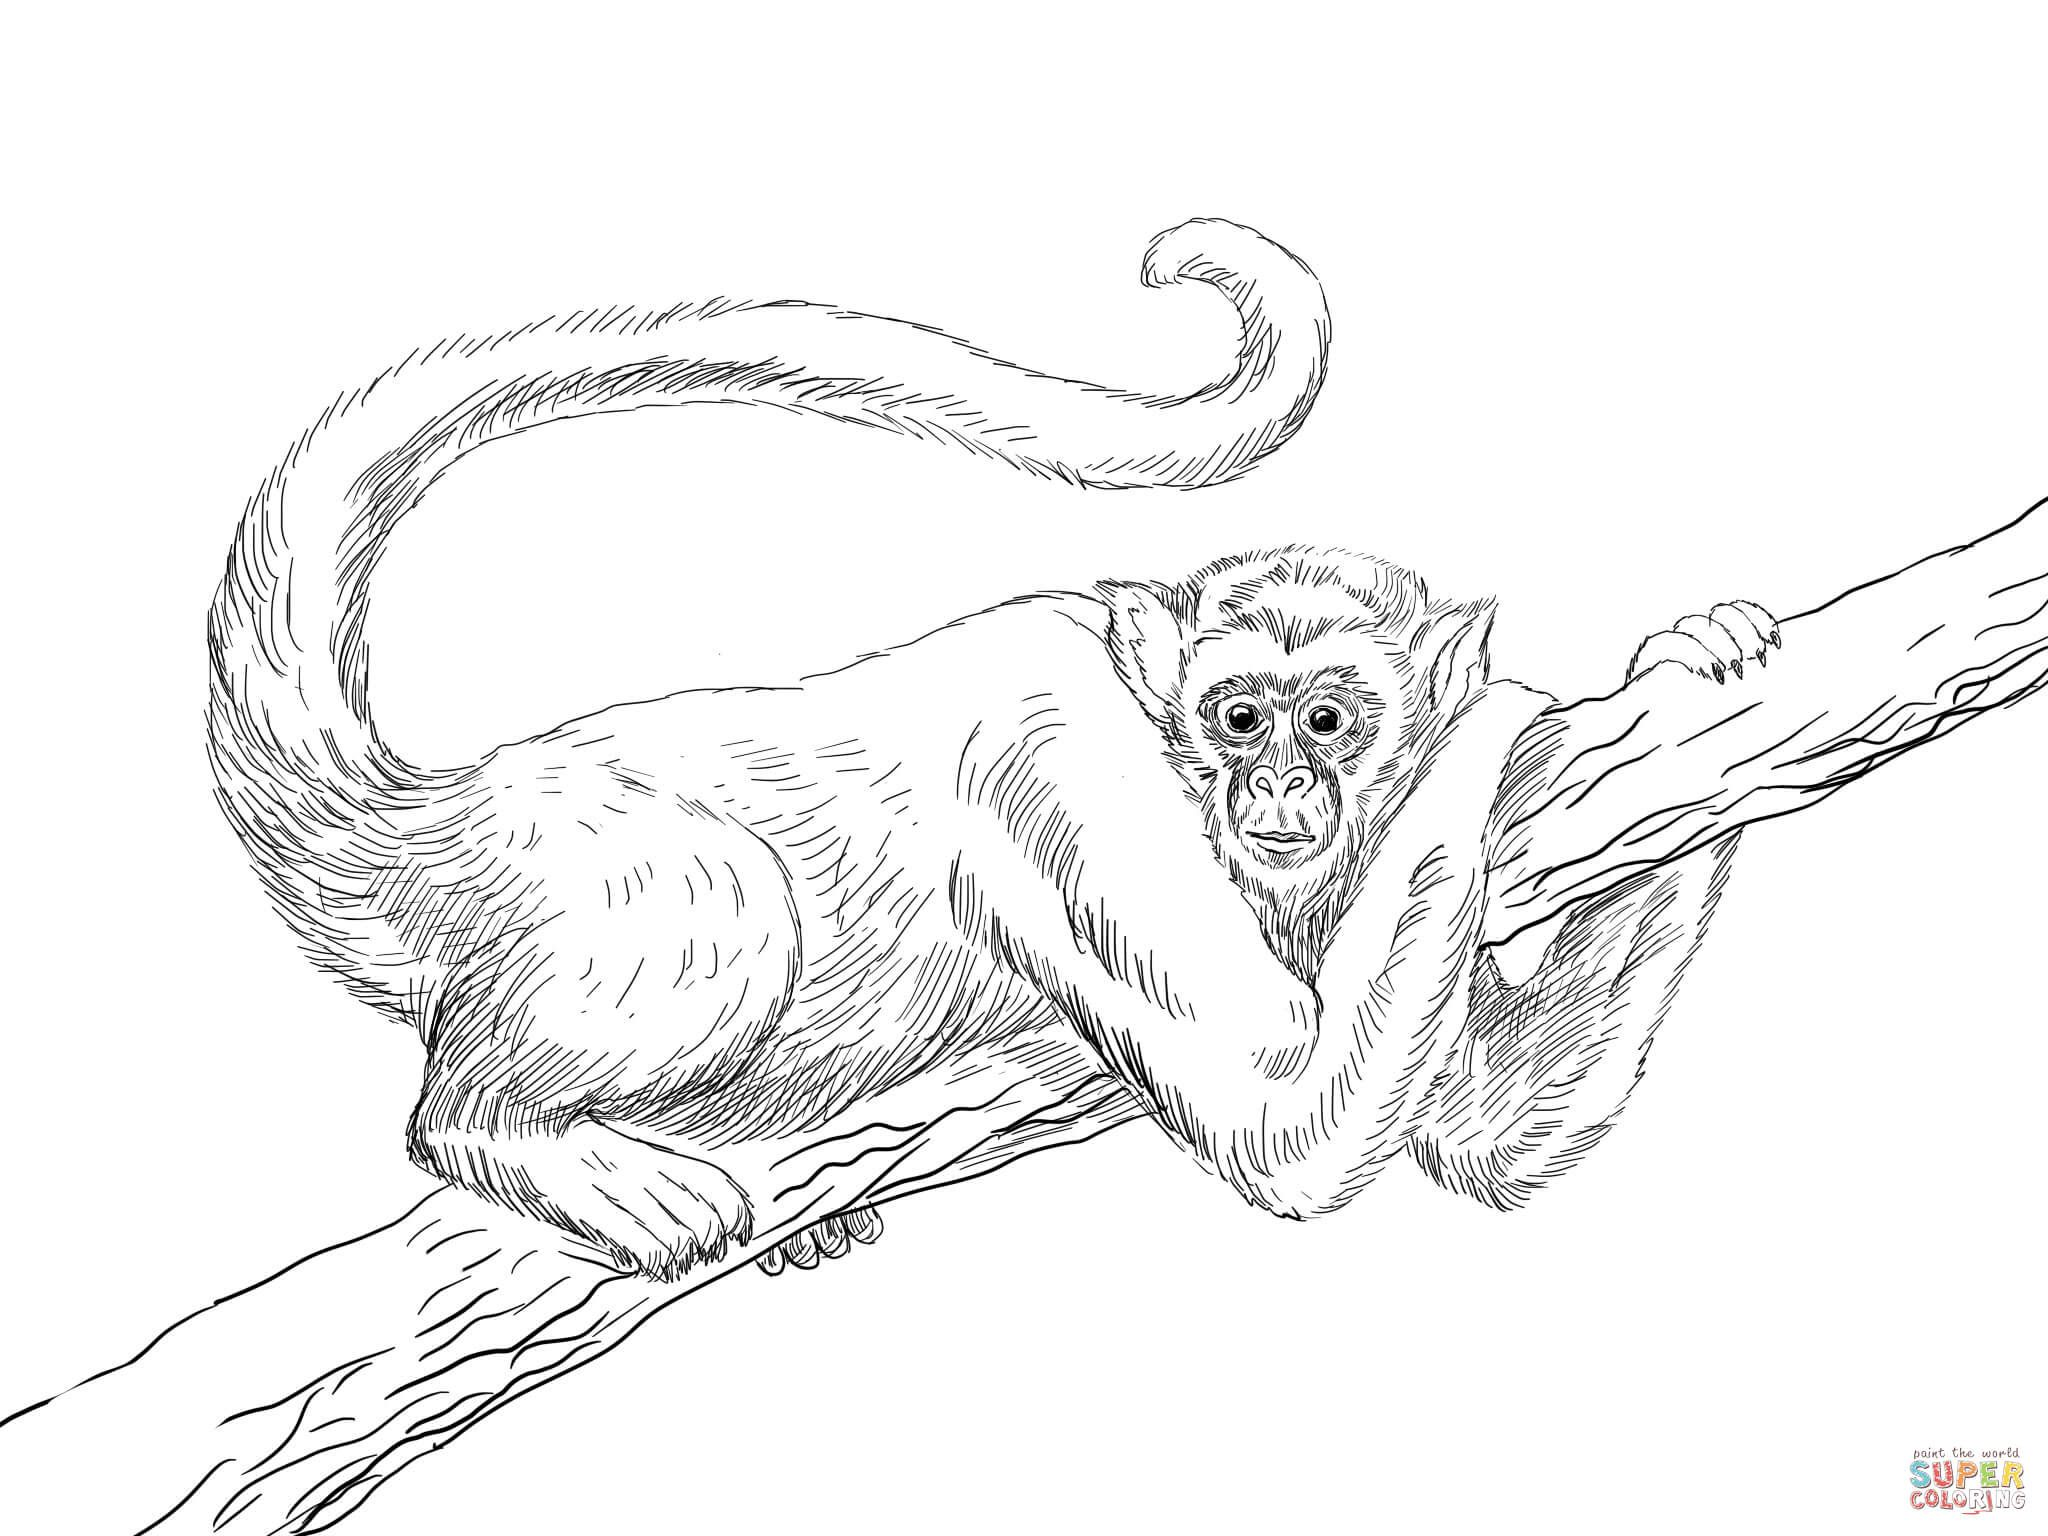 Muriqui Or Wooly Spider Monkey Coloring Page From Category Select 27298 Printable Crafts Of Cartoons Nature Animals Bible And Many